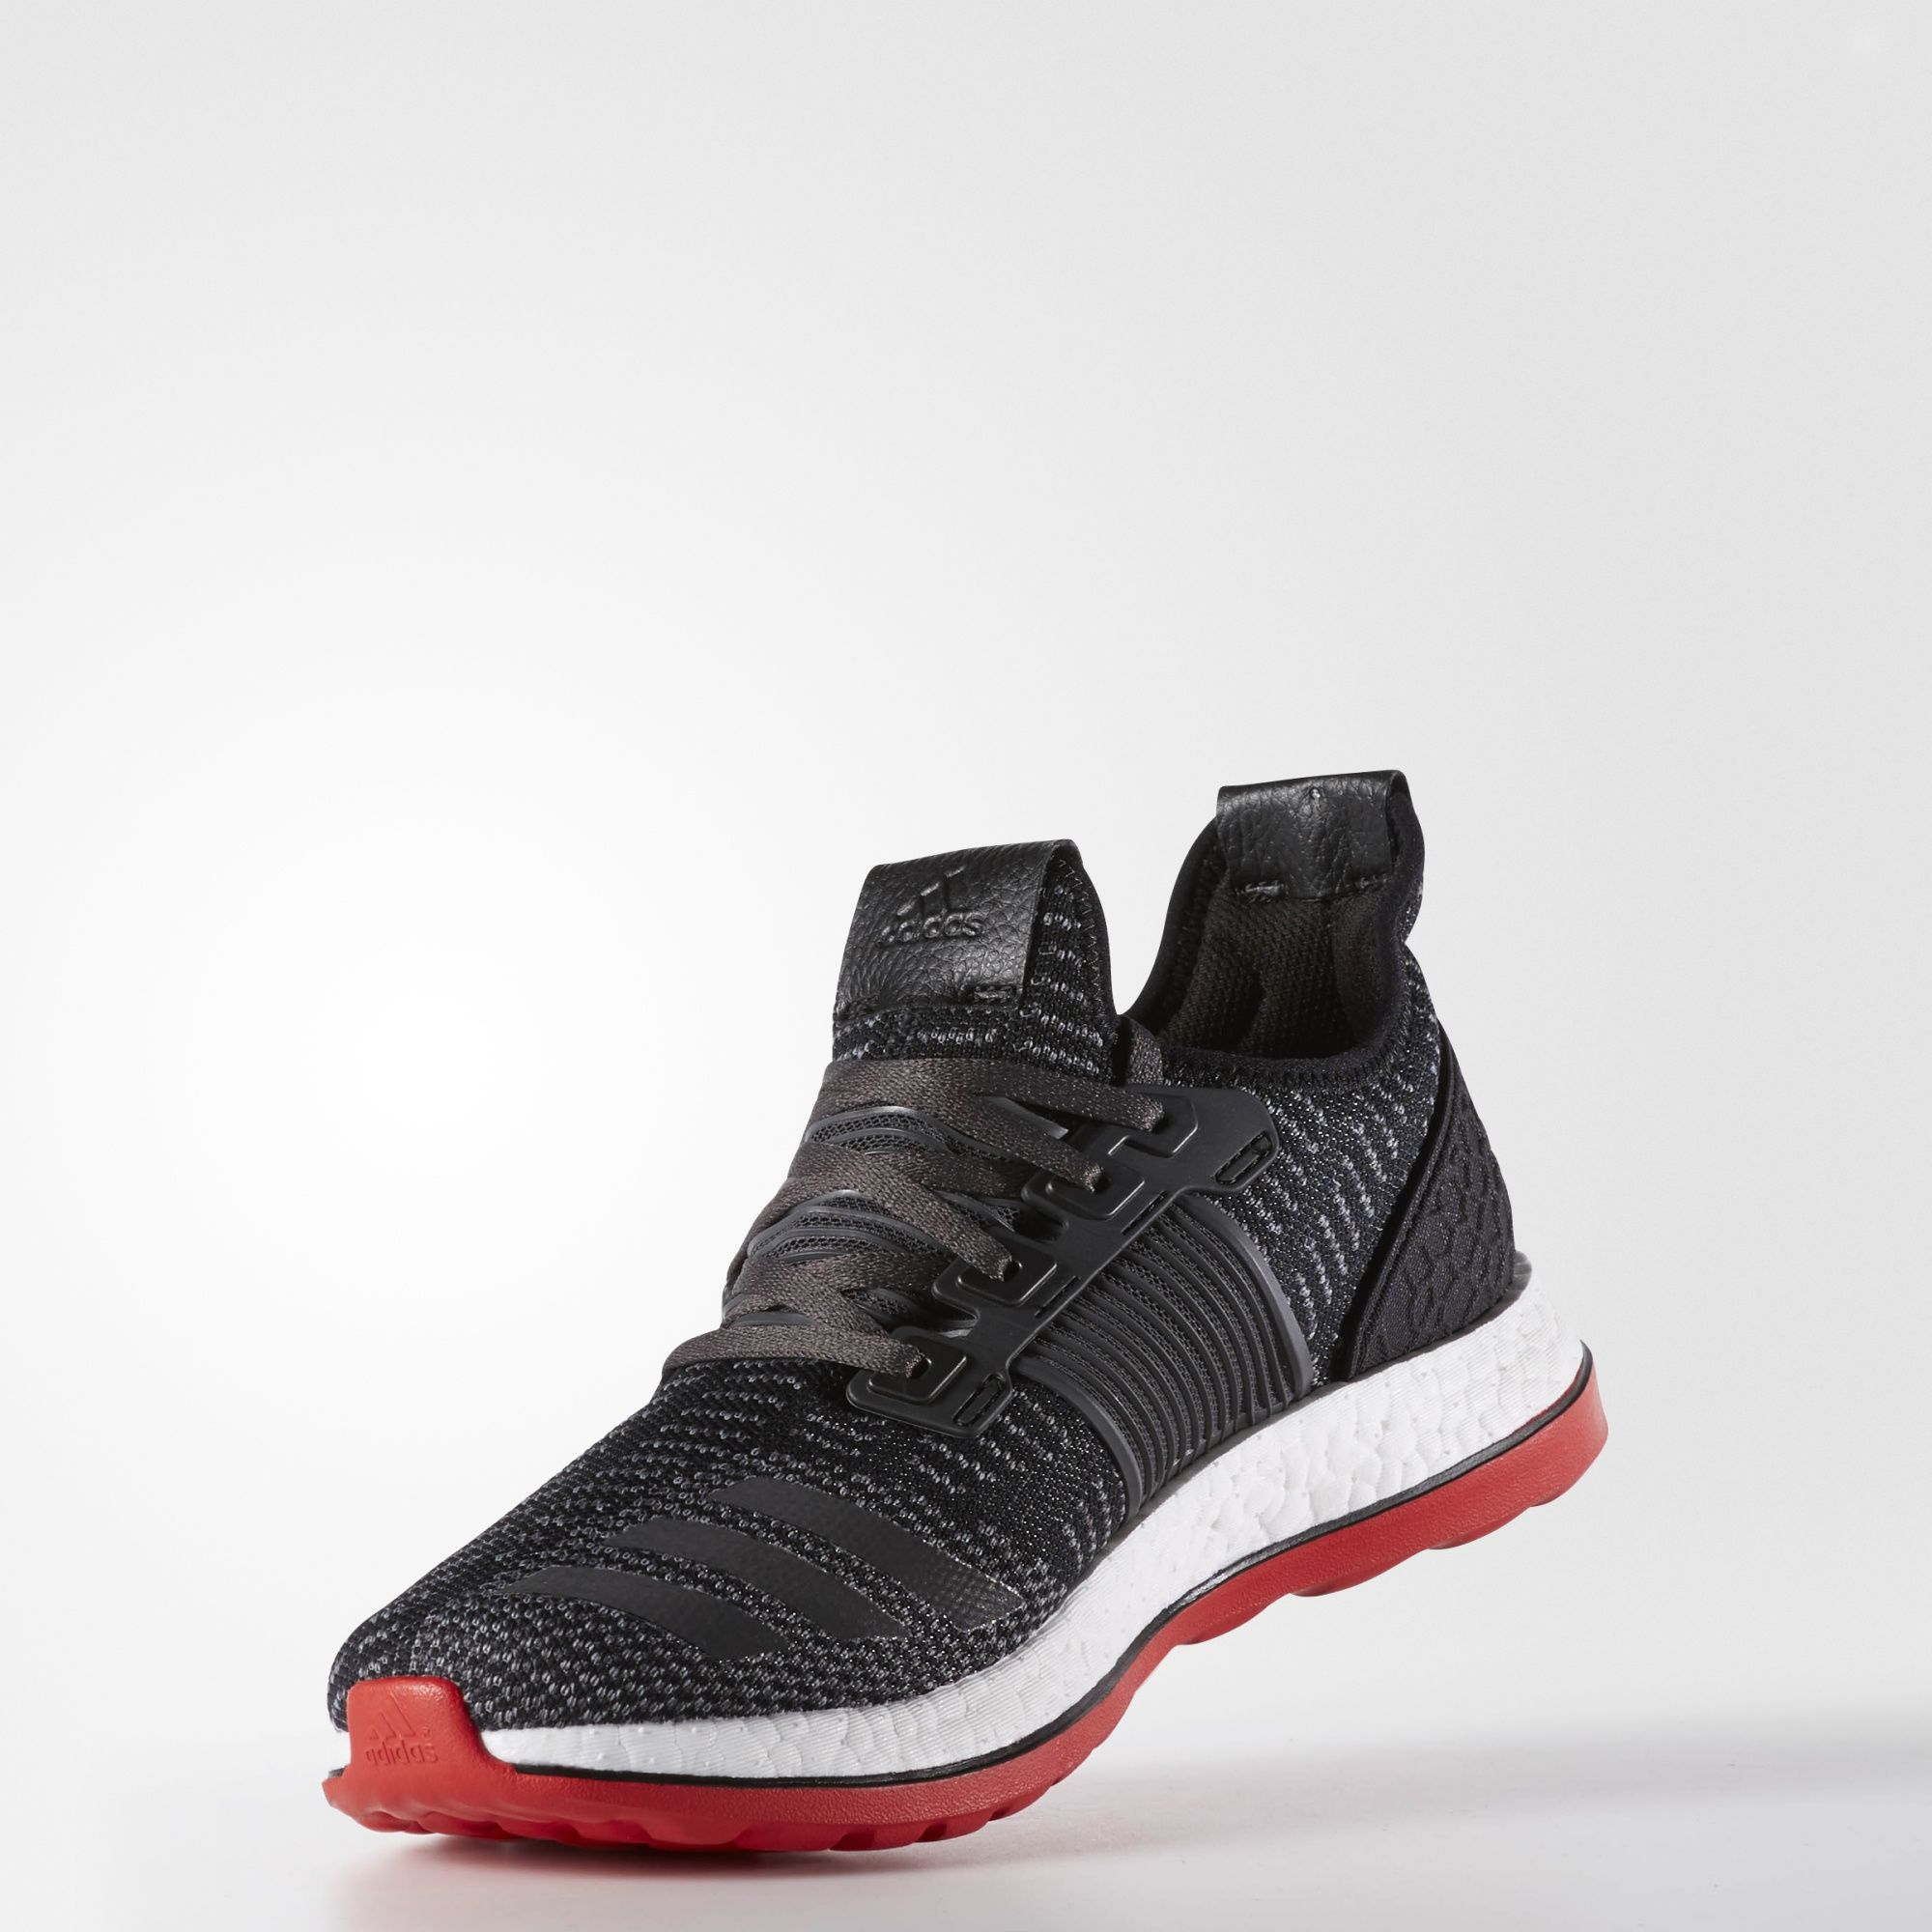 newest 8e201 5e255 The adidas Pureboost ZG Prime is Available Now - WearTesters